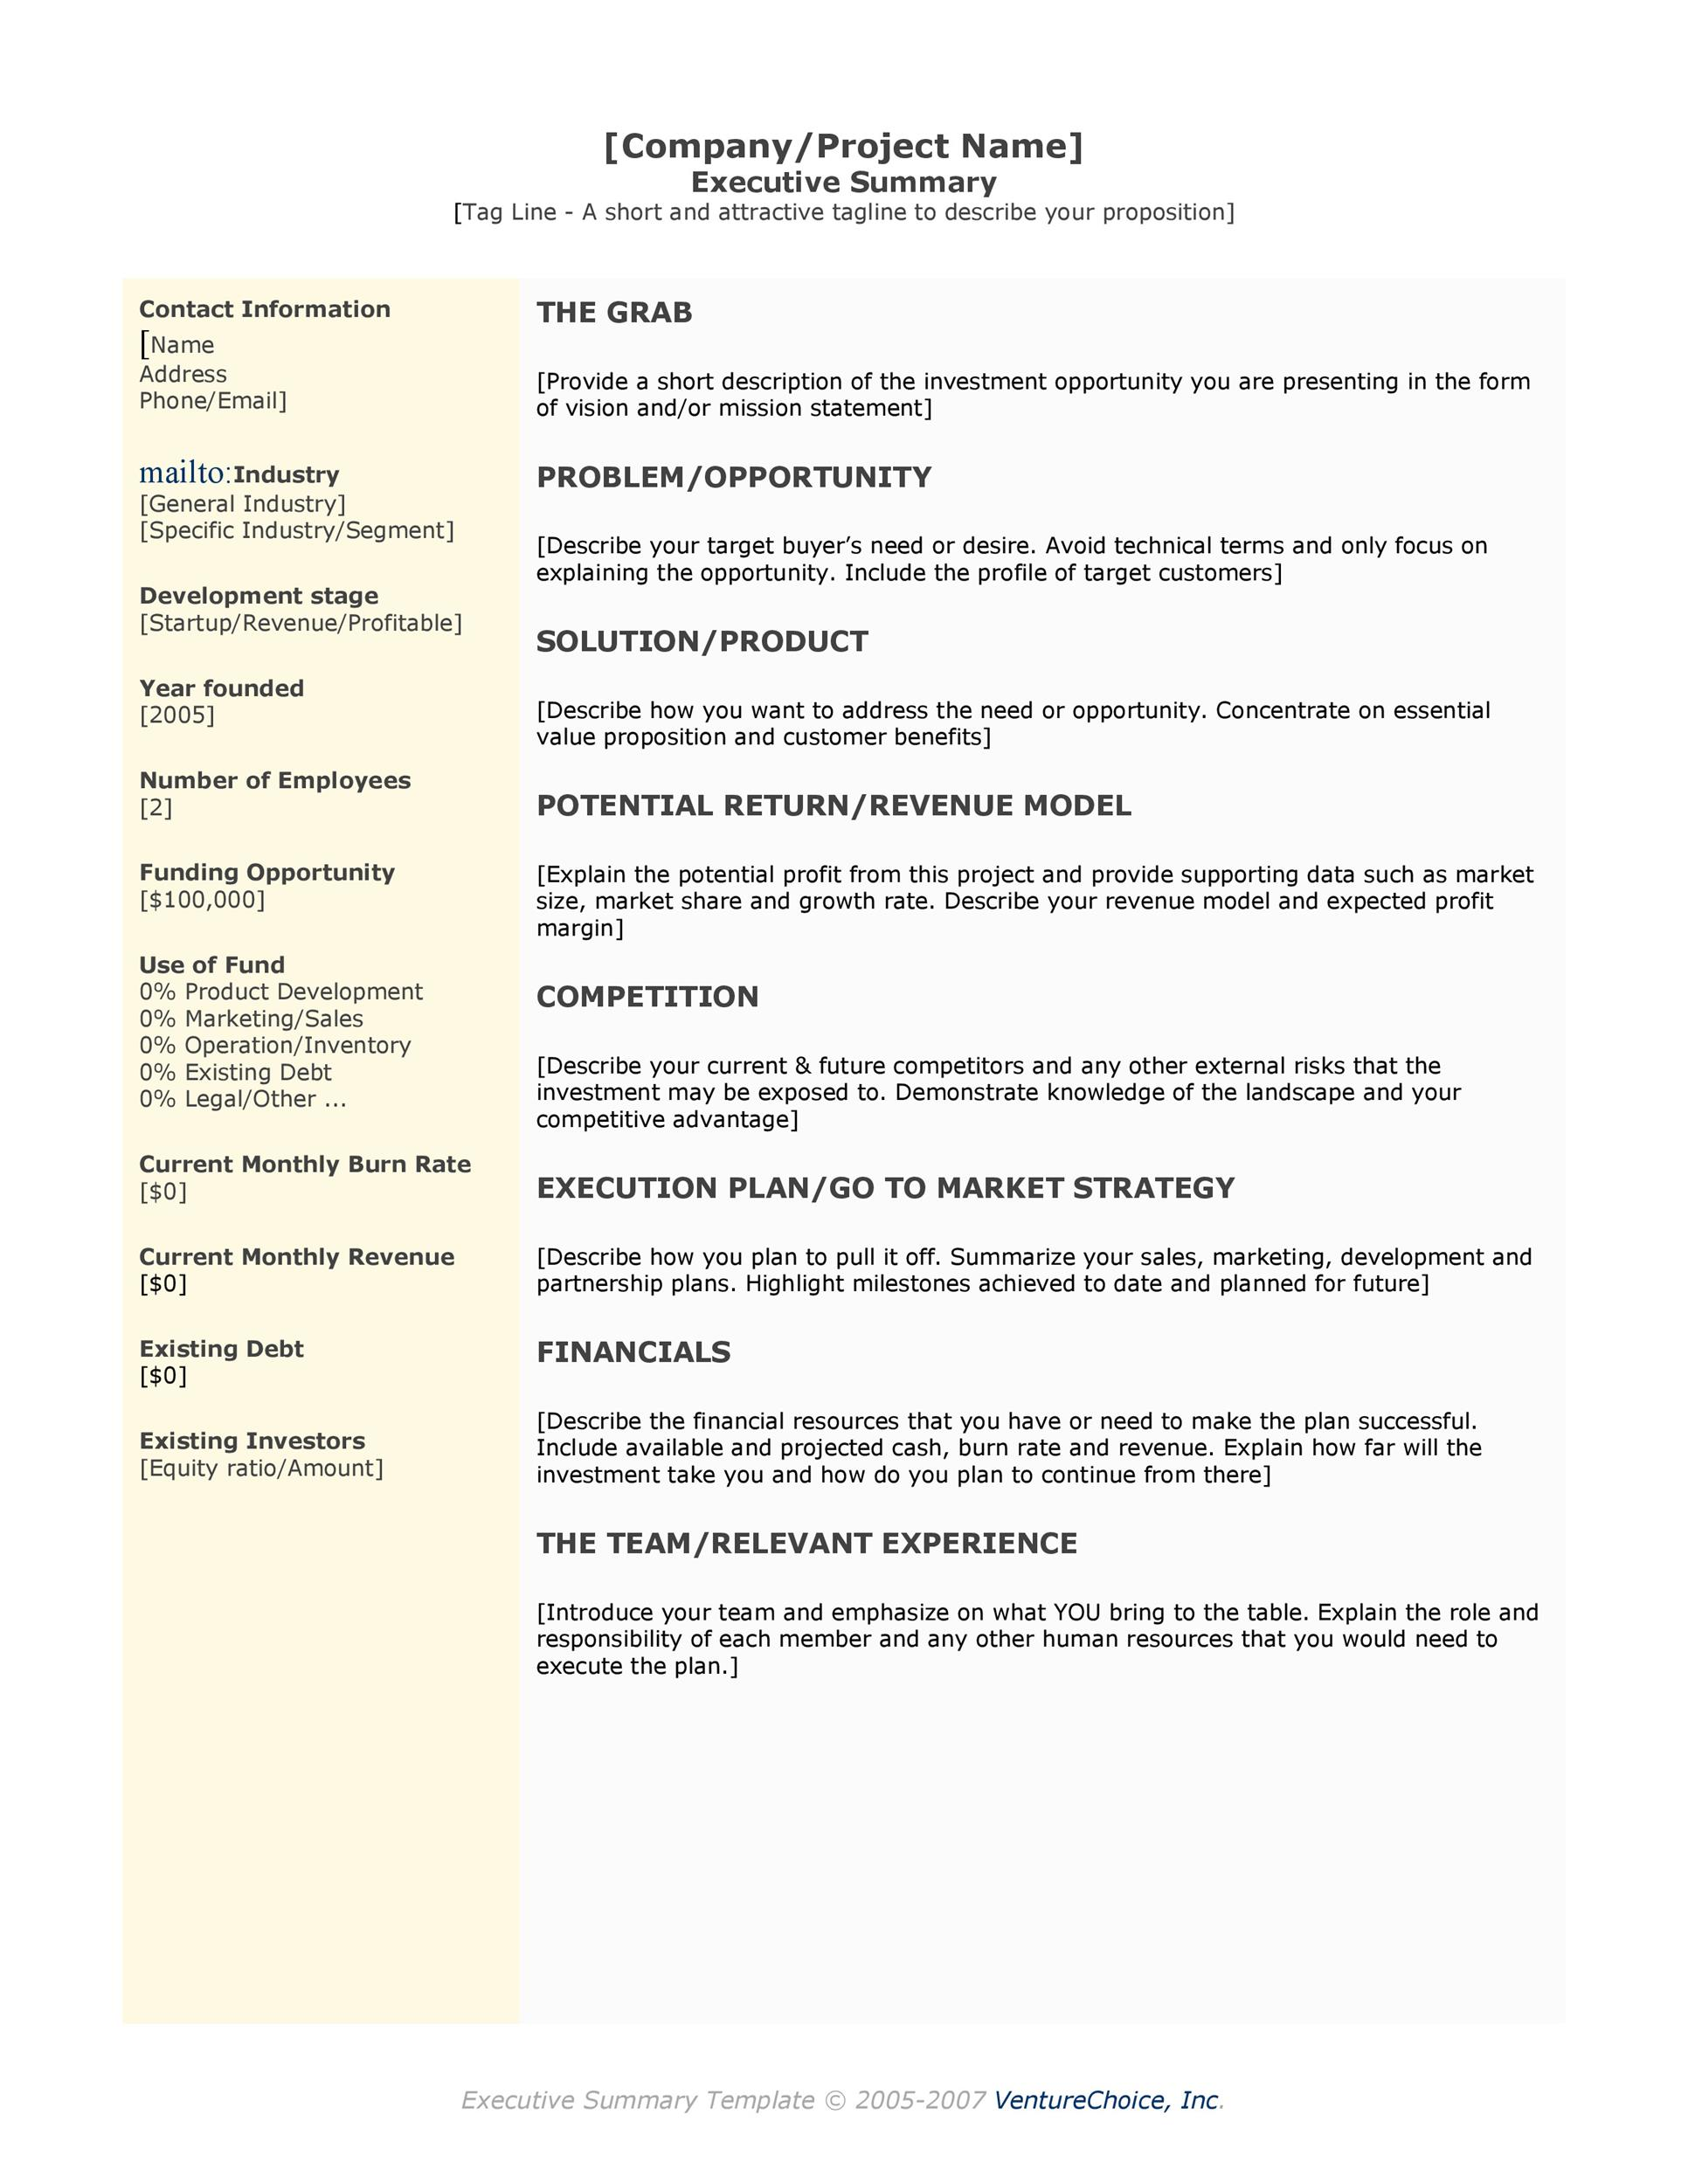 30 perfect executive summary examples templates template lab